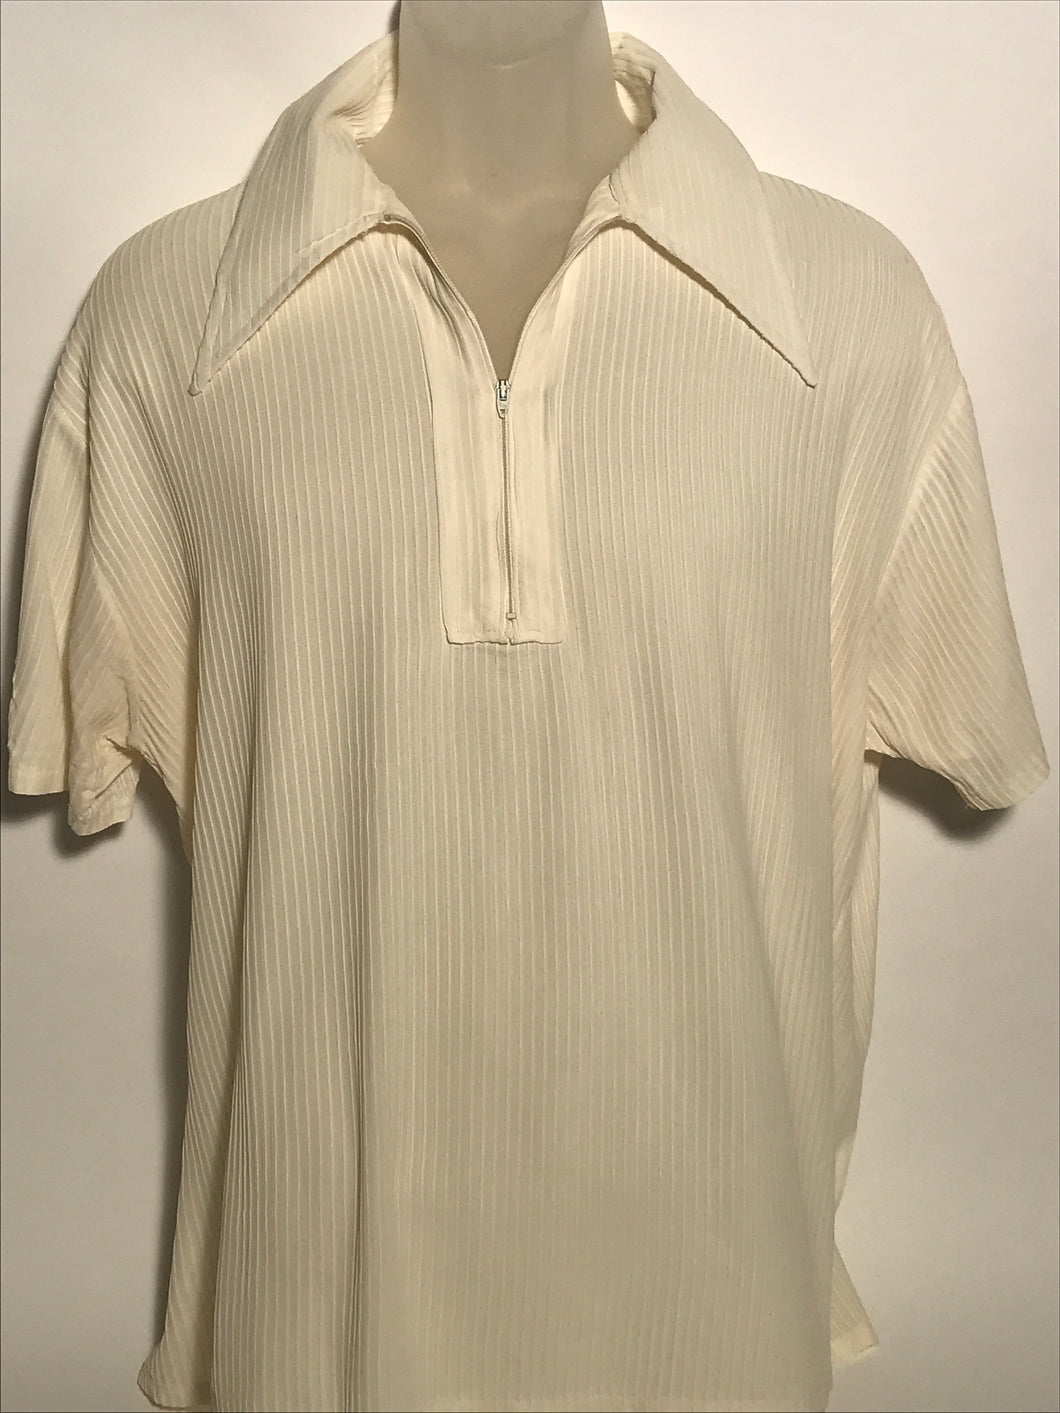 Vintage 1970s Short Sleeve Men's Shirt Size Extra Large RENTAL XL926